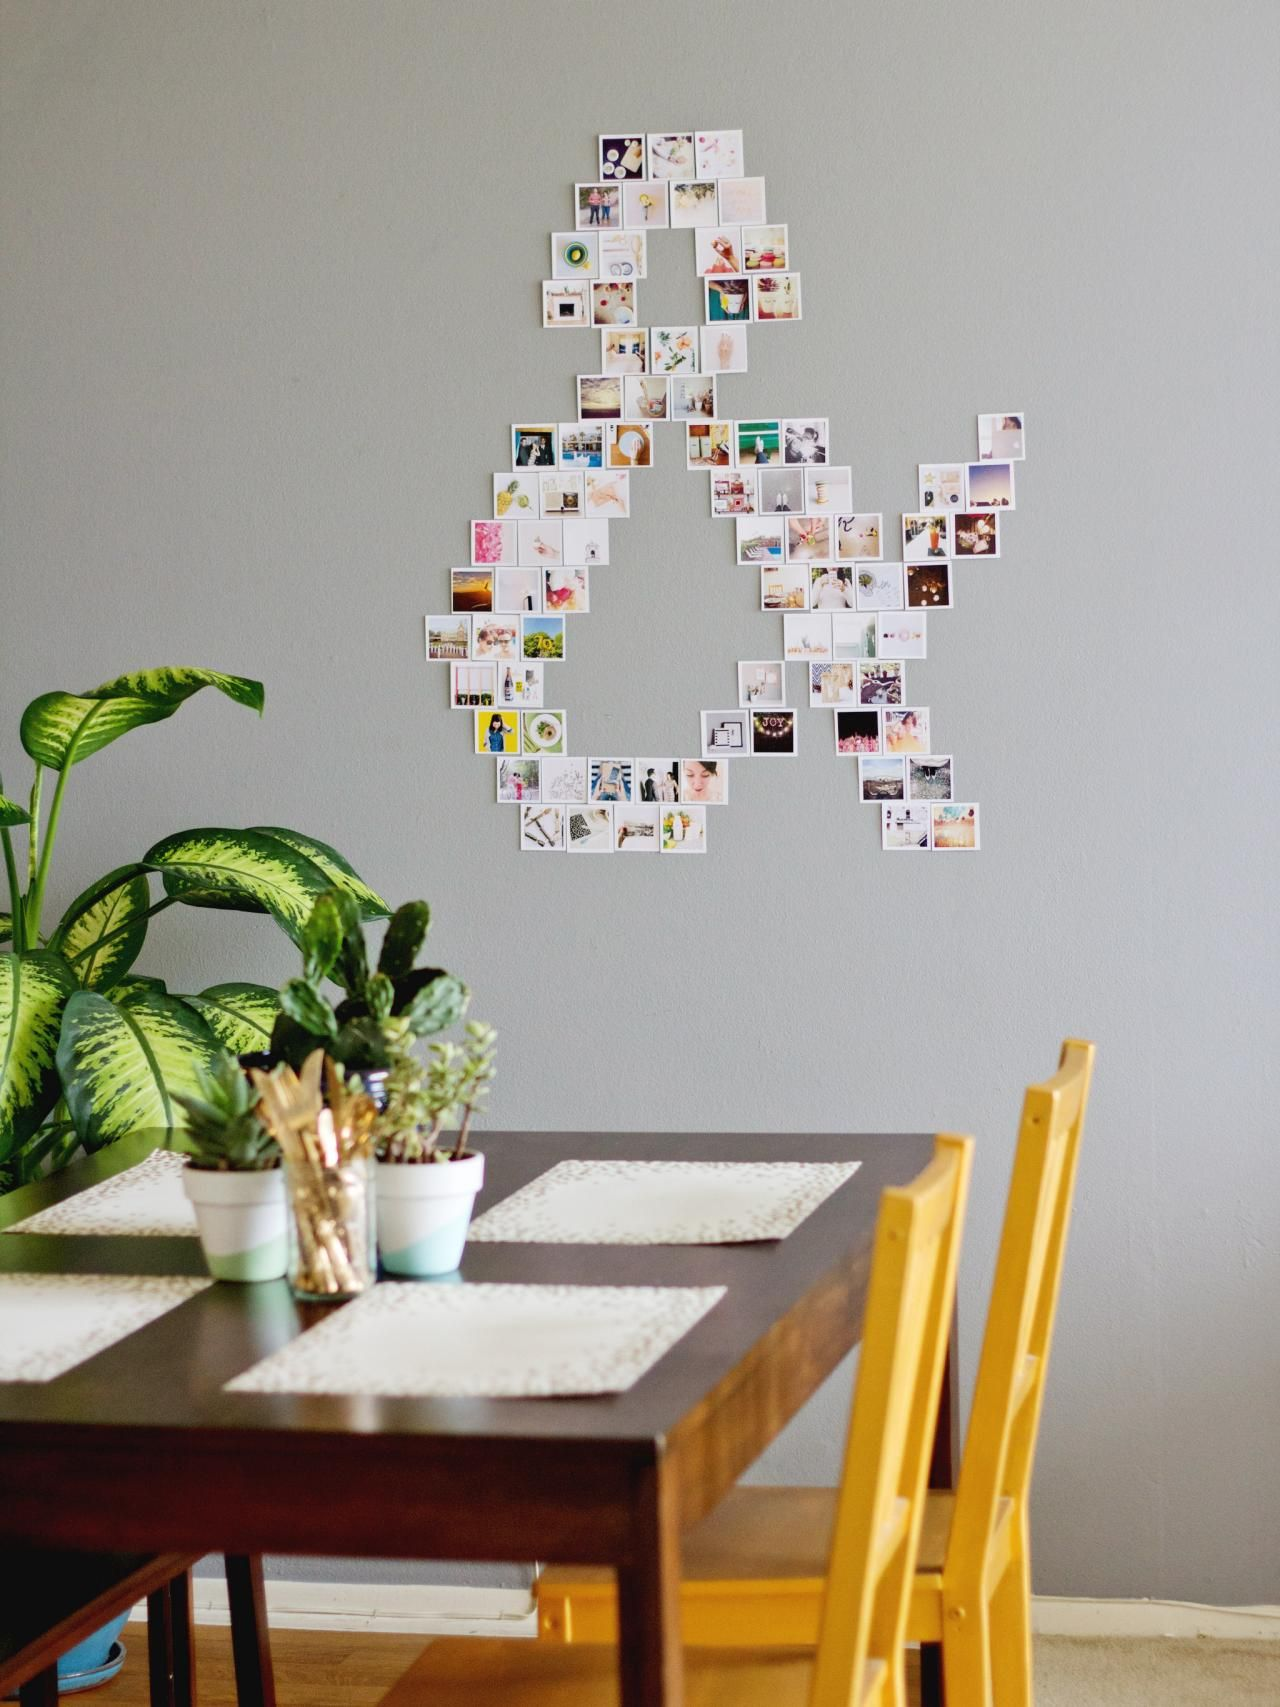 Great ideas for d wall art that arenut antlers giant letters